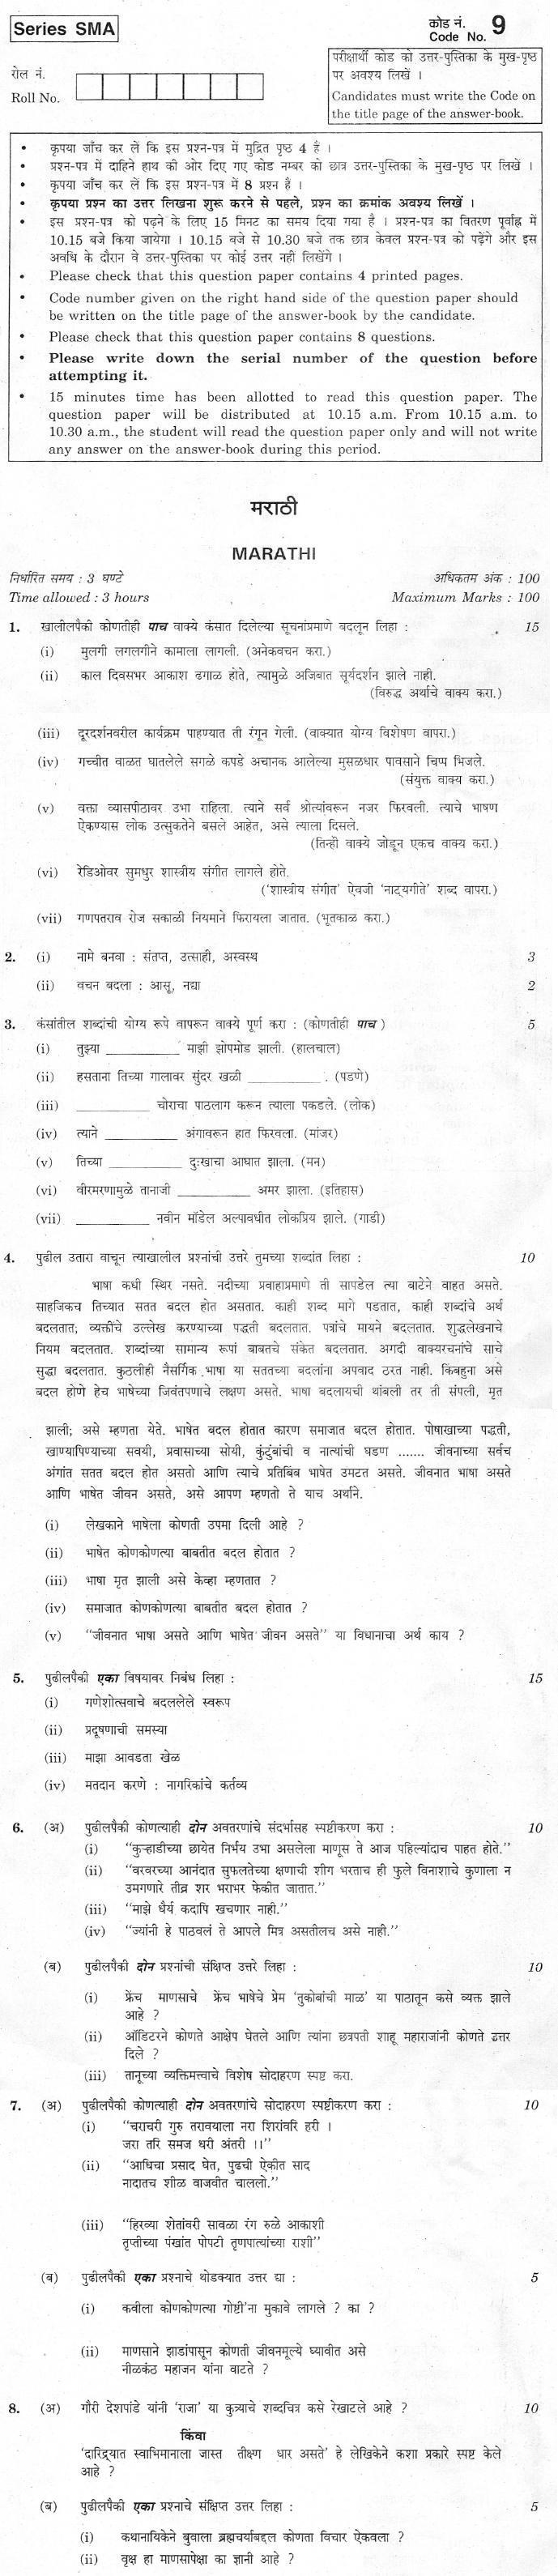 CBSE Class XII Previous Year Question Paper 2012 Marathi